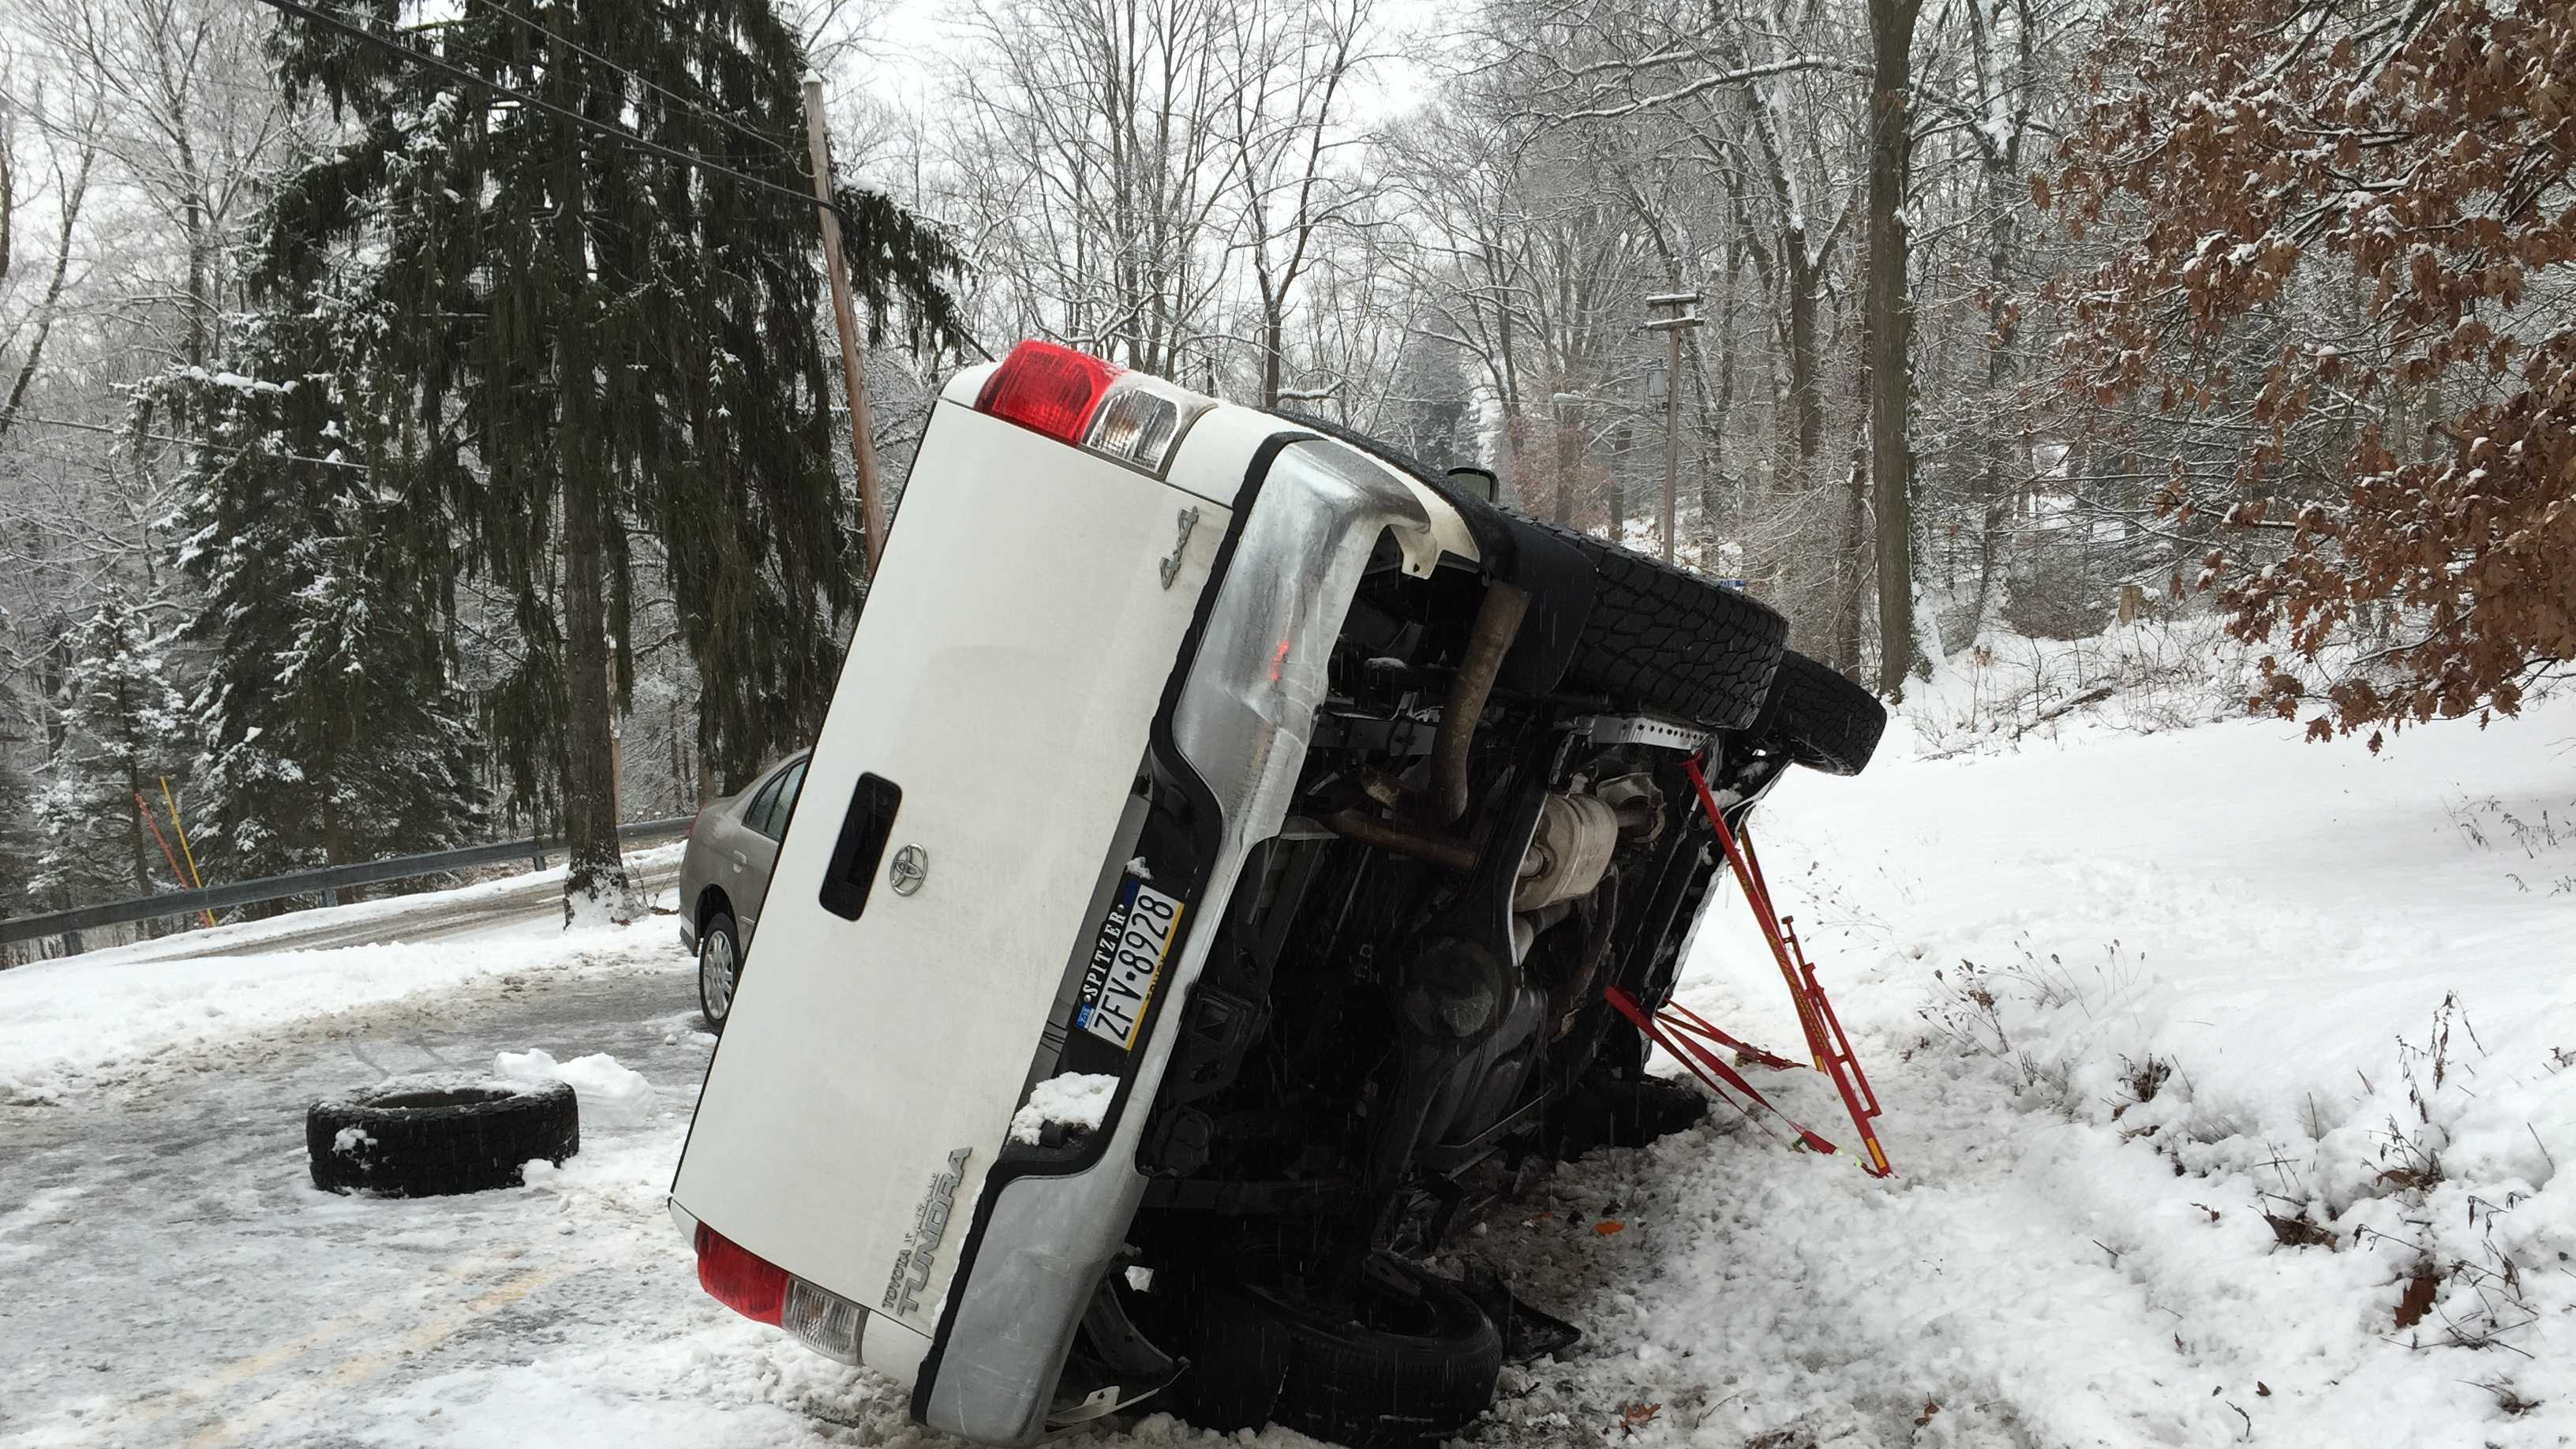 No one was injured after a 2-car accident in Murrysville, Westmoreland County.